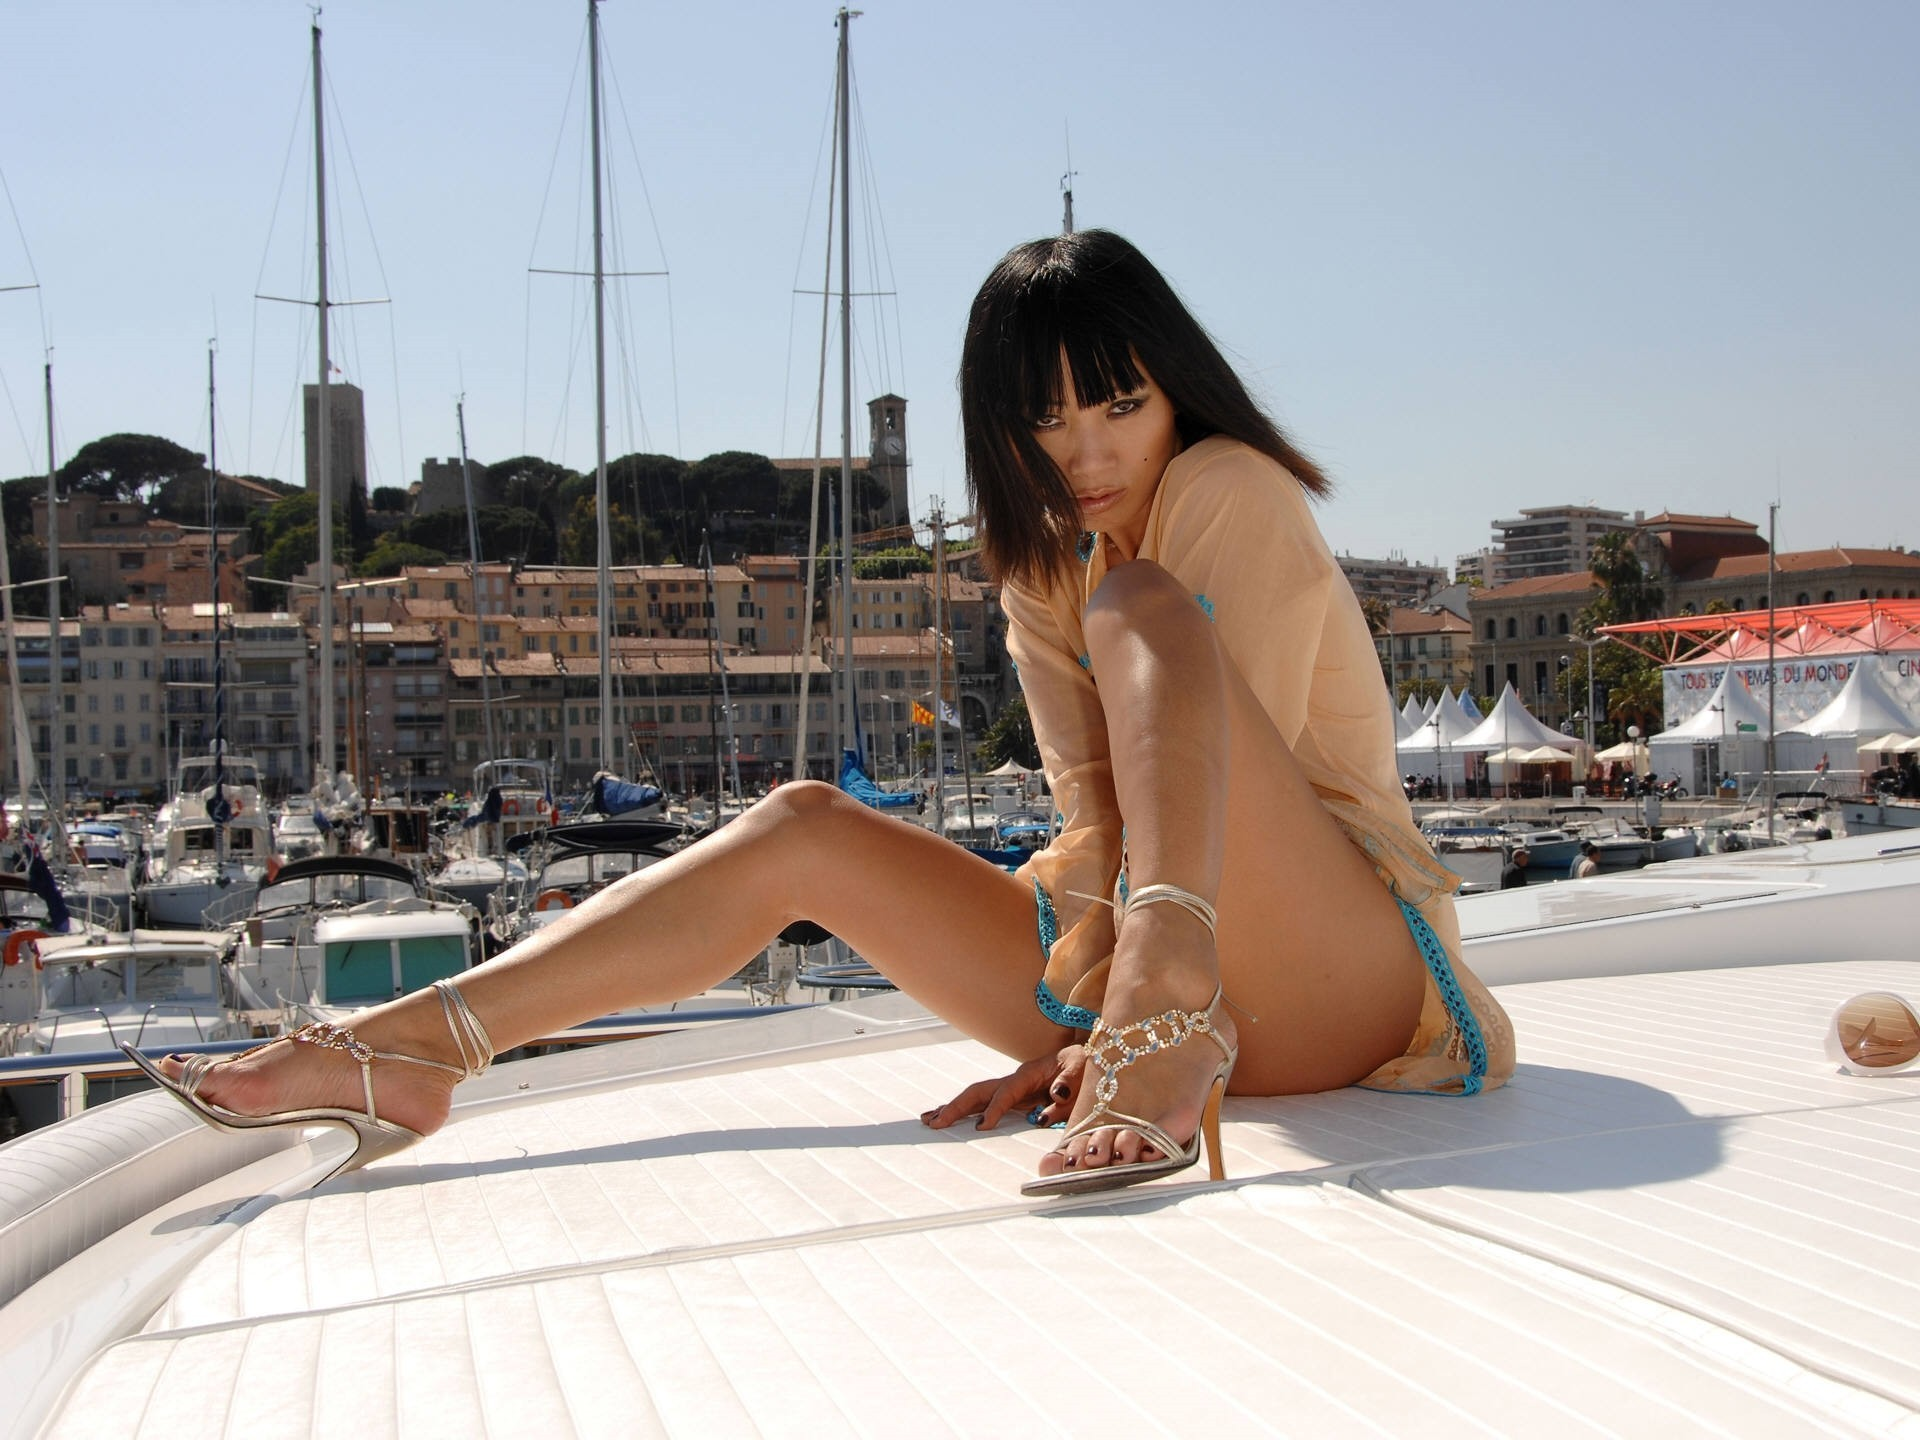 woman ships bai ling HD Wallpaper